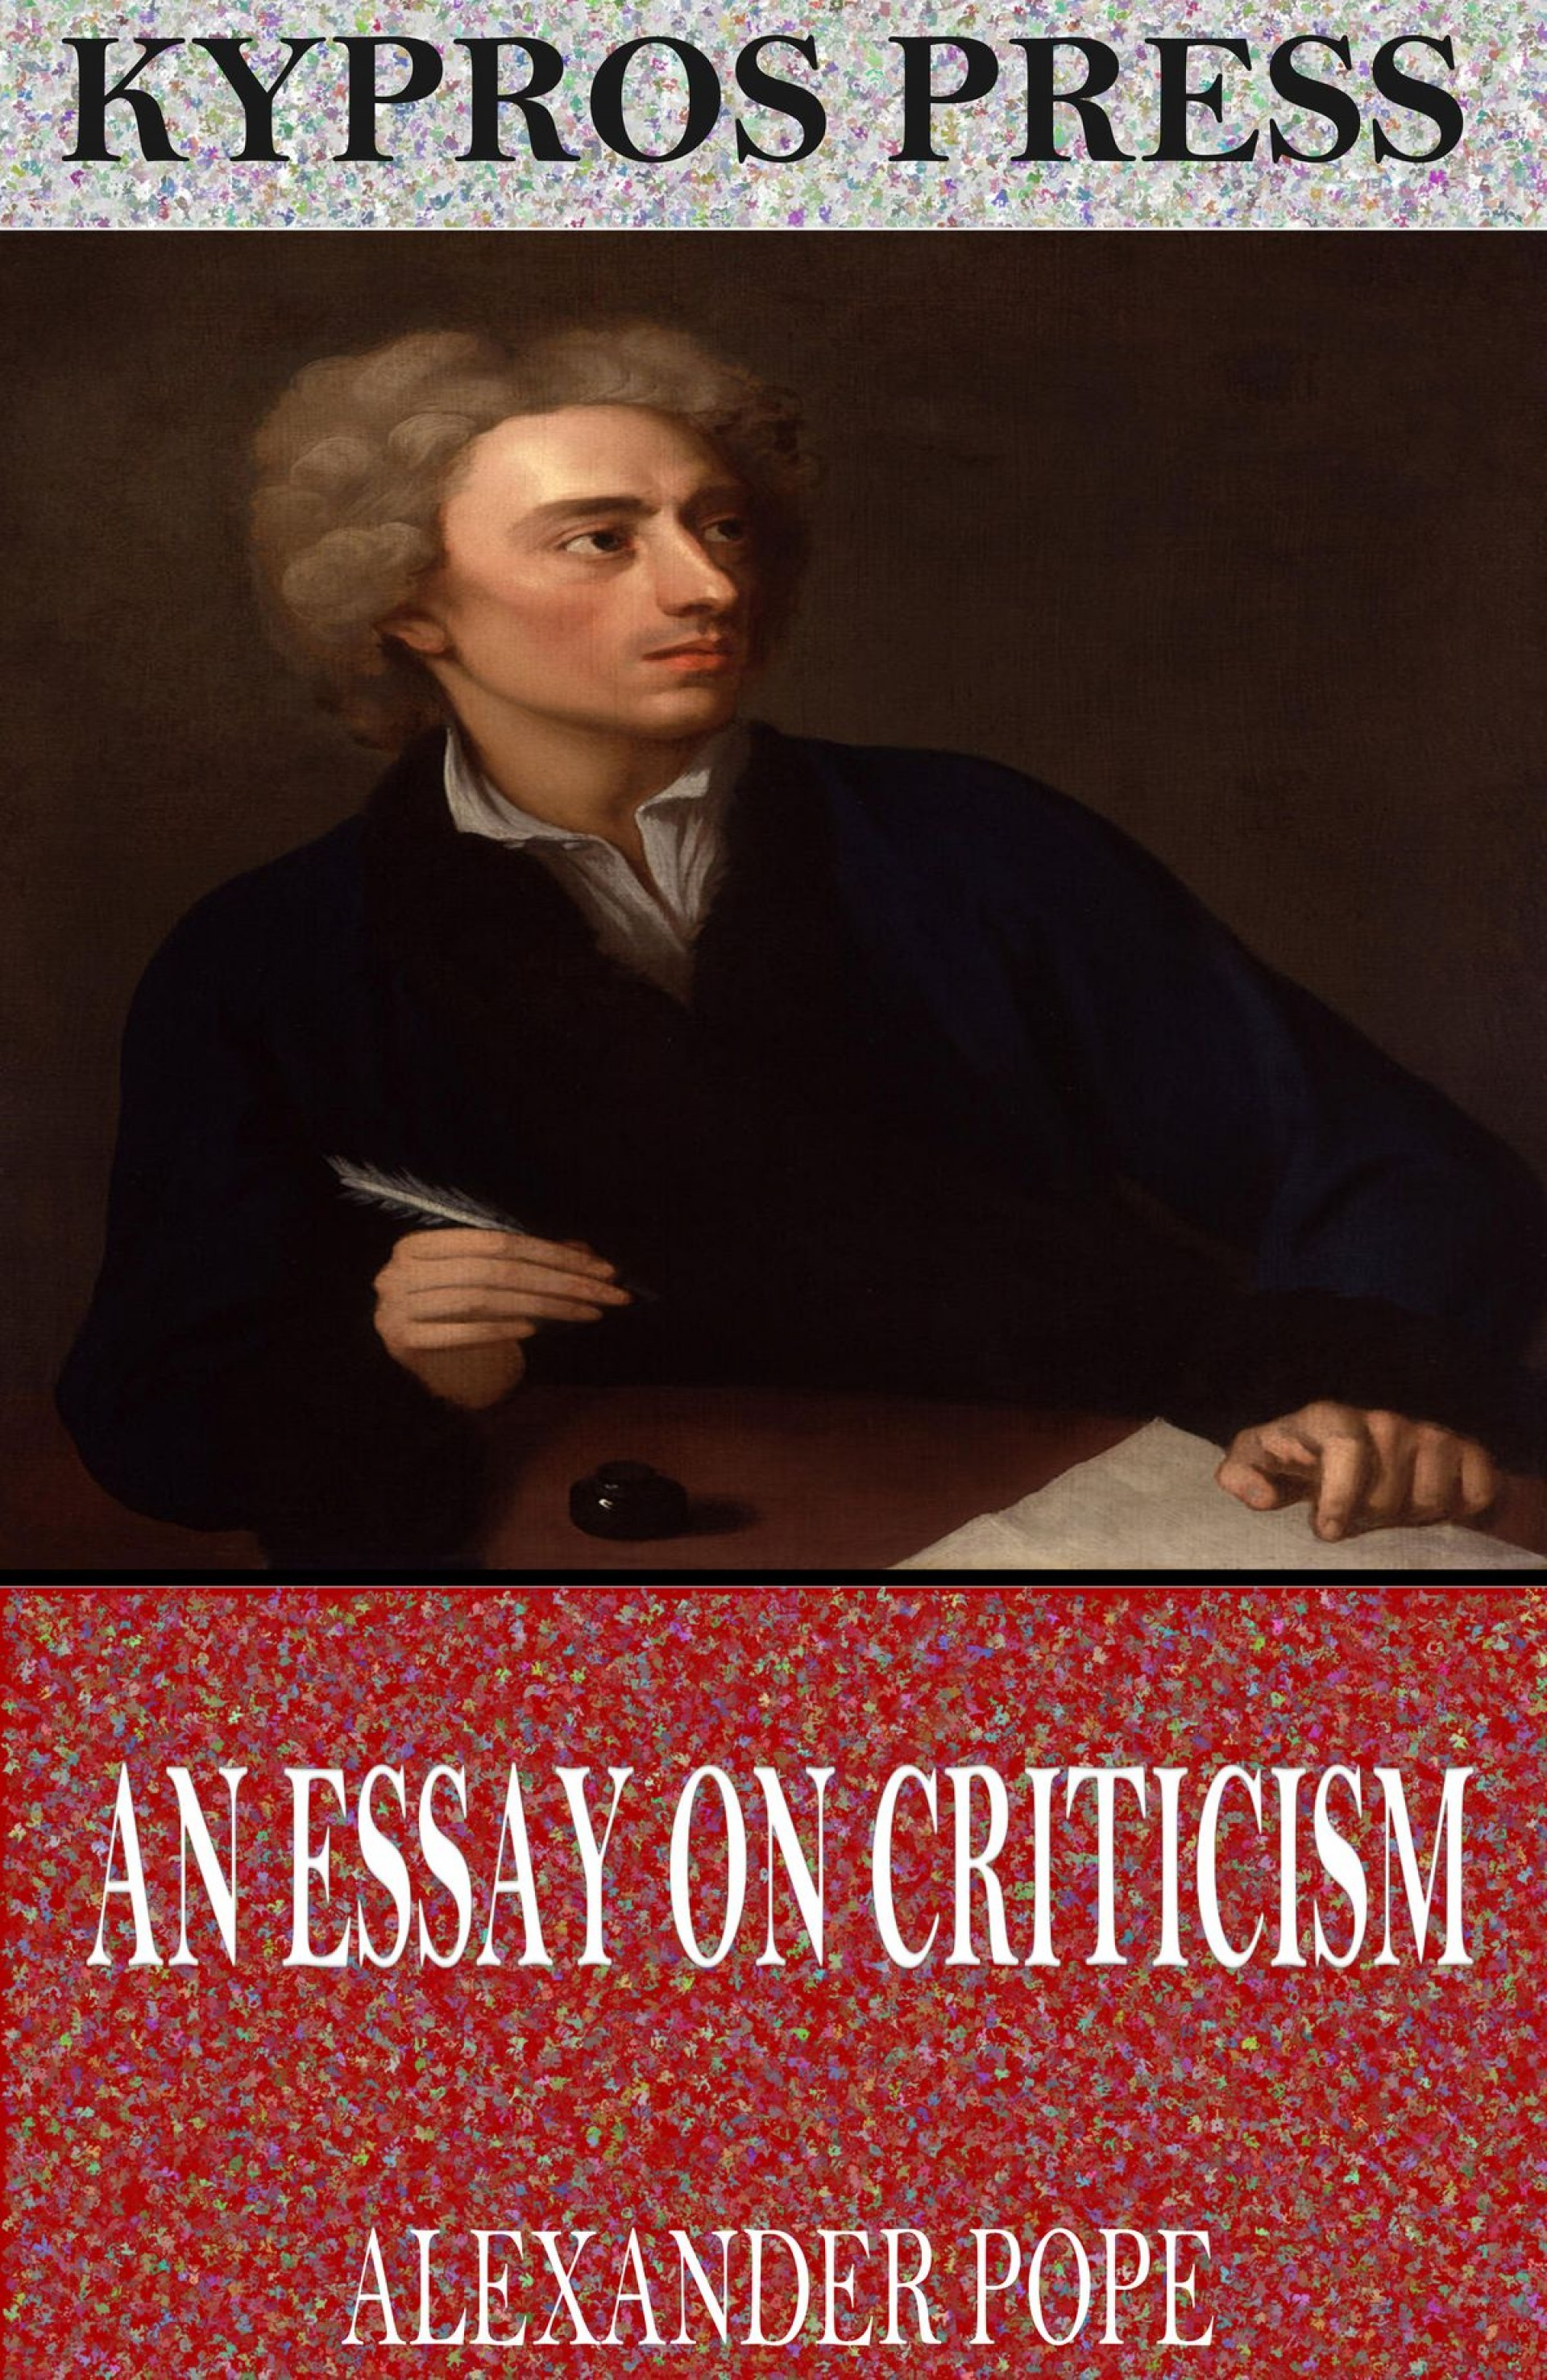 006 Essay Example An On Criticism Sensational Lines 233 To 415 Part 3 Analysis Pdf 1920